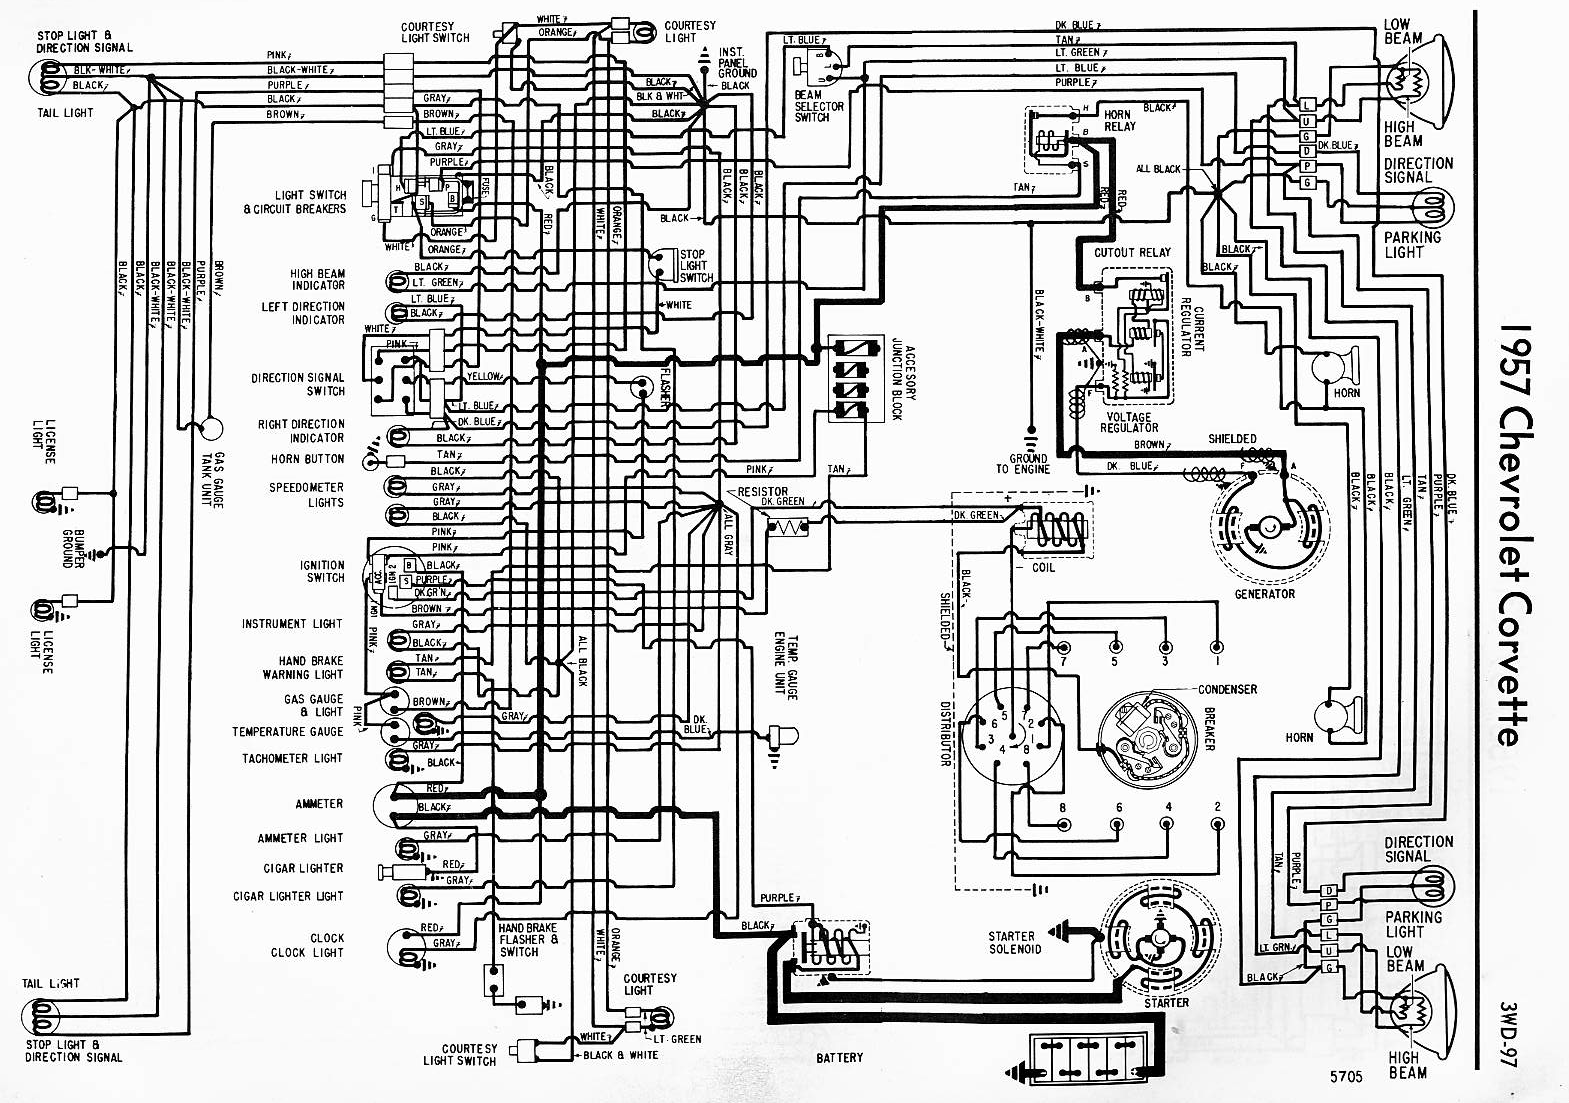 1977 corvette wiring diagram schematic schematics wiring diagrams u2022 rh  parntesis co 1982 corvette fuse panel